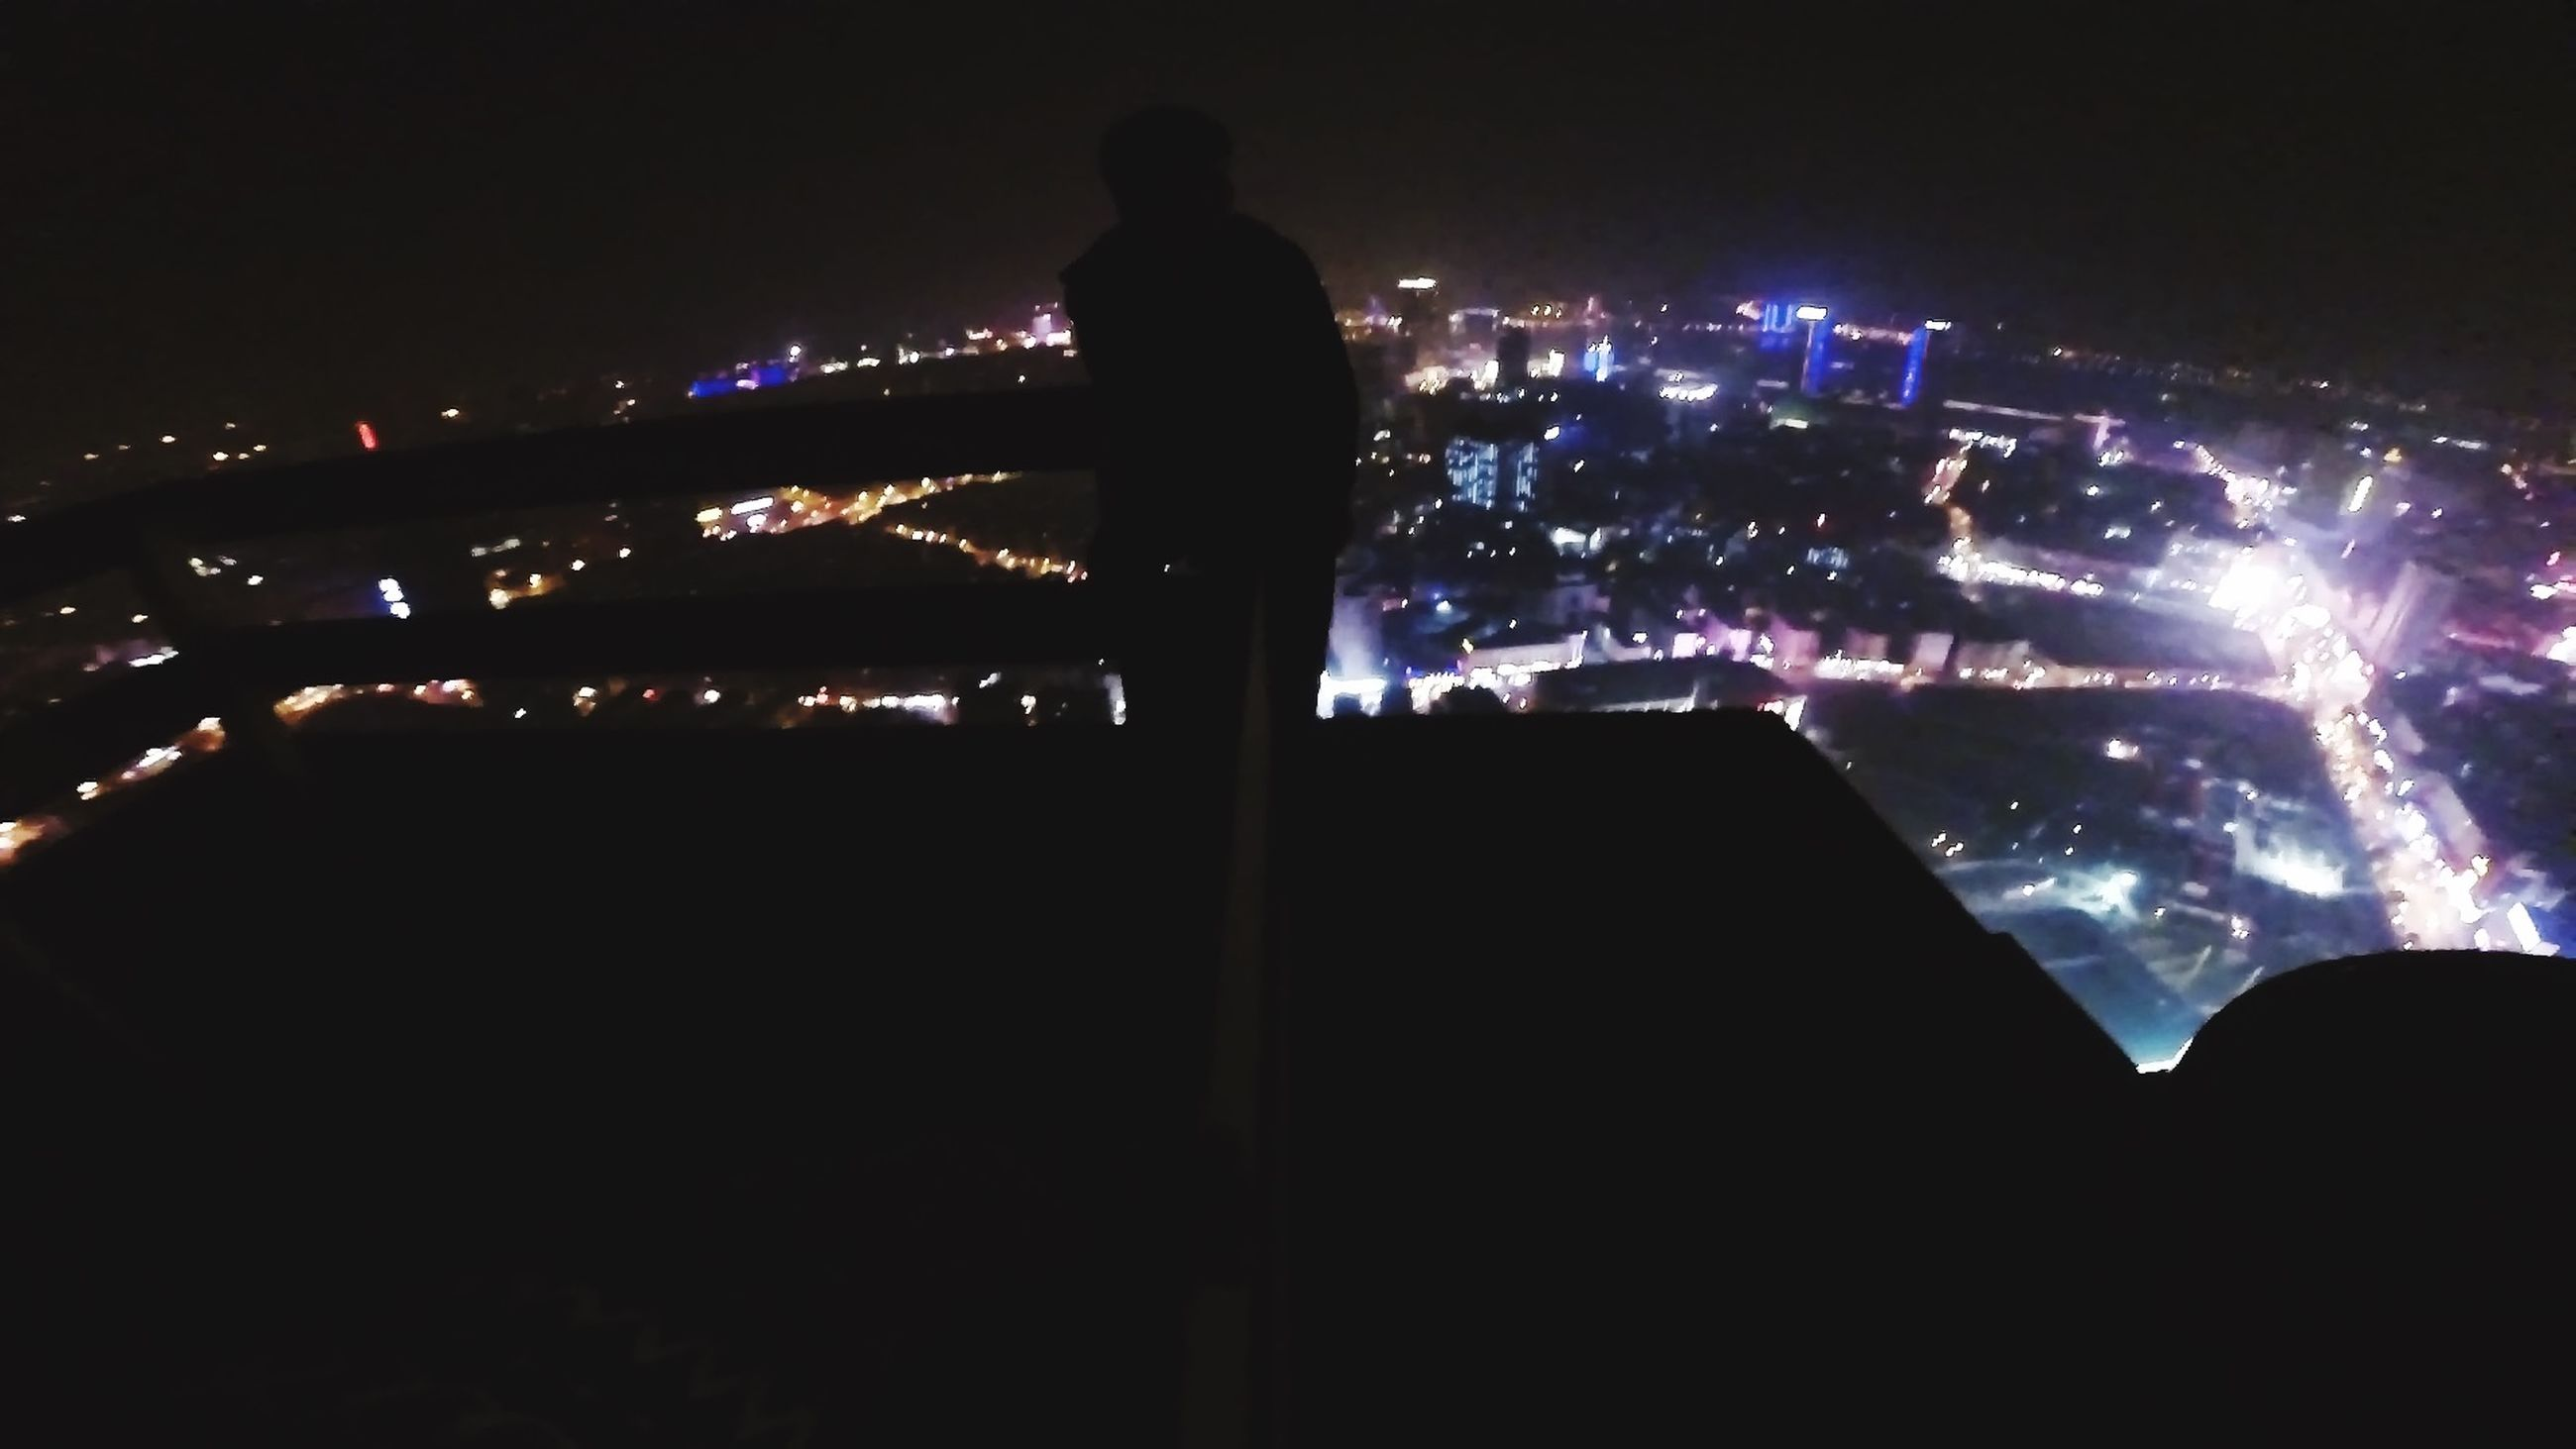 night, illuminated, city, building exterior, architecture, silhouette, cityscape, built structure, lifestyles, dark, leisure activity, skyscraper, men, city life, water, modern, standing, rear view